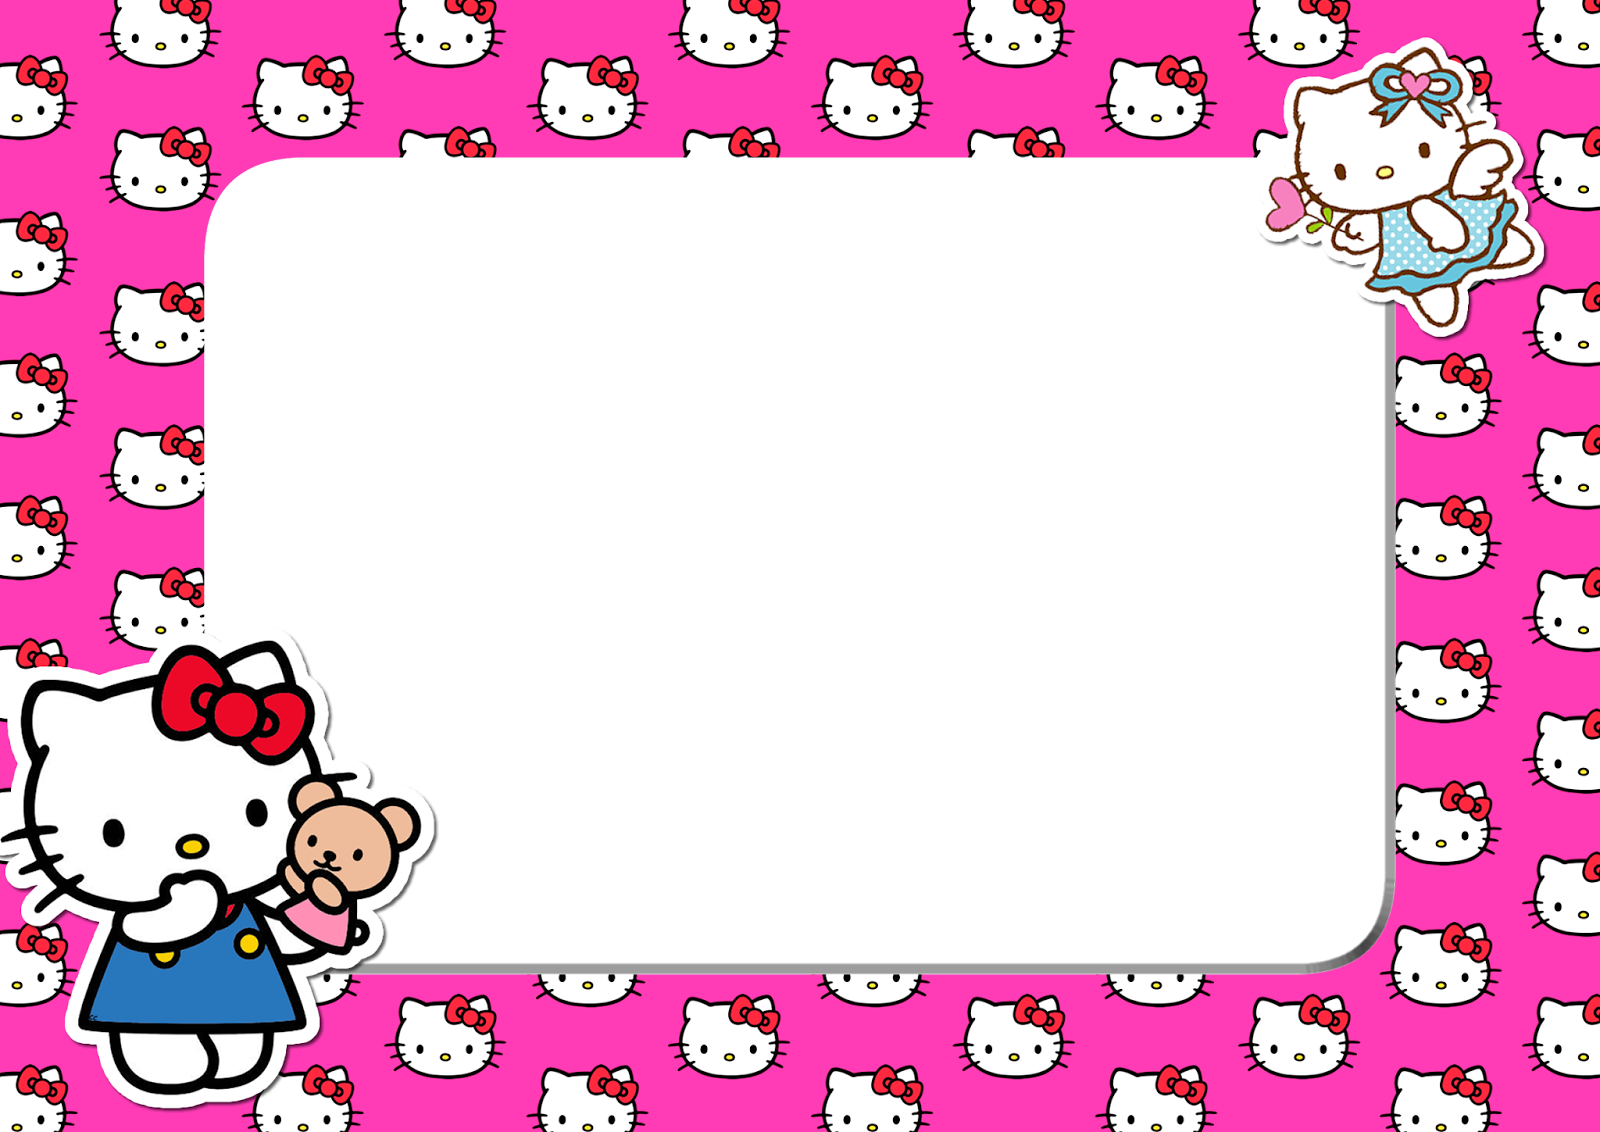 Cute Barbie Images For Wallpaper Hello Kitty Pink Head Png Frame Printable Png Frames